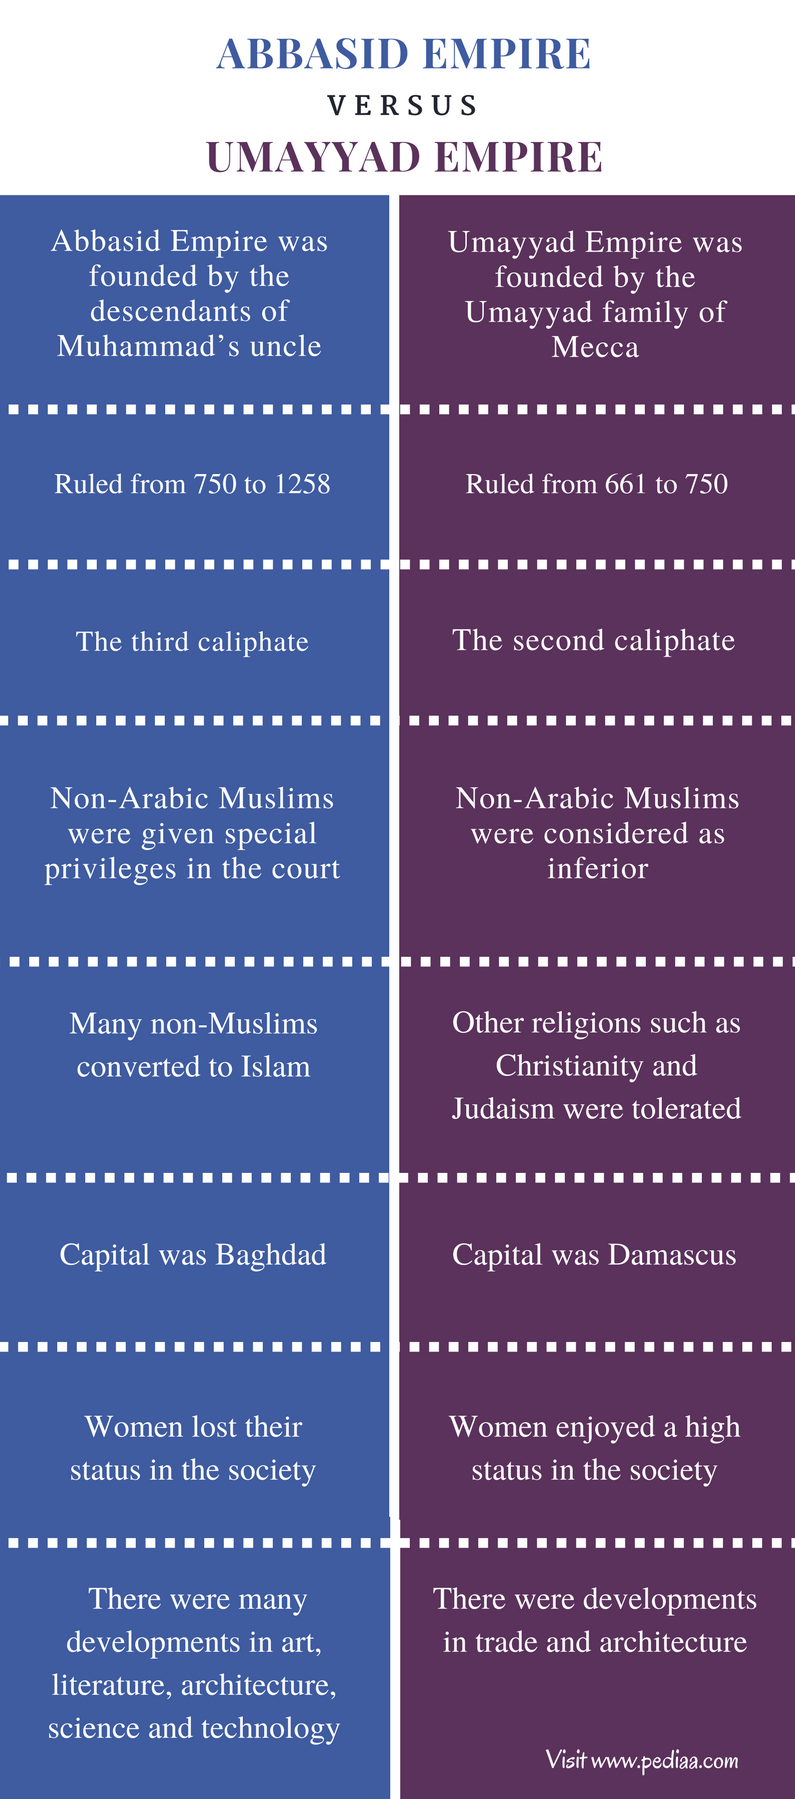 Difference Between Abbasid and Umayyad Empire - Comparison Summary